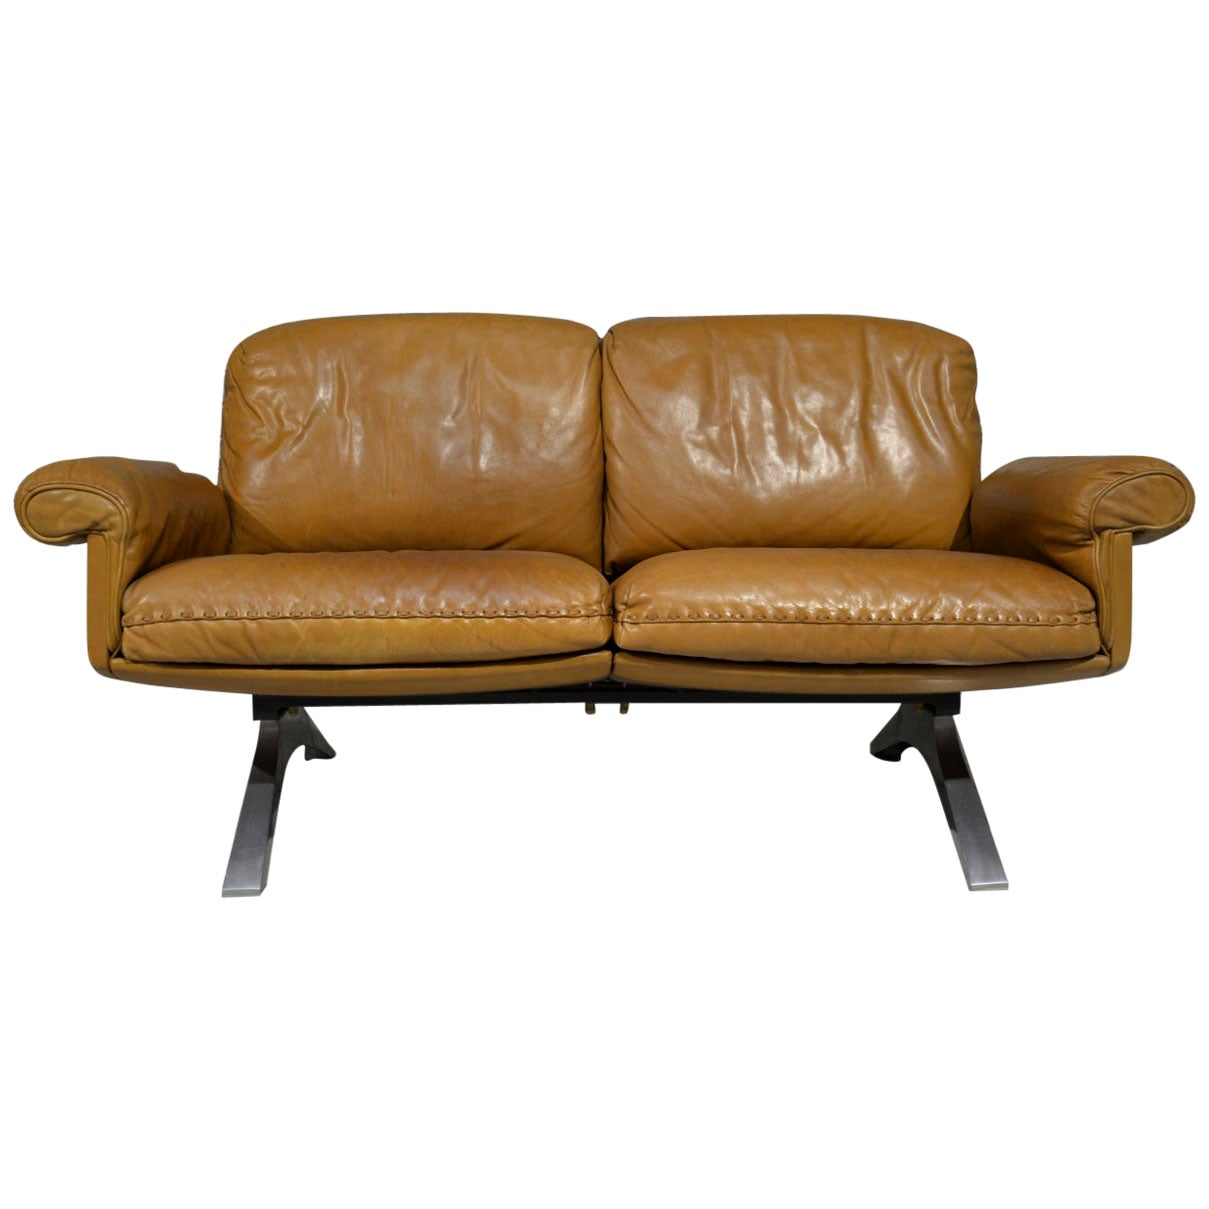 Vintage De Sede DS 31 Leather Two-Seat Sofa or Loveseat, Switzerland, 1970s